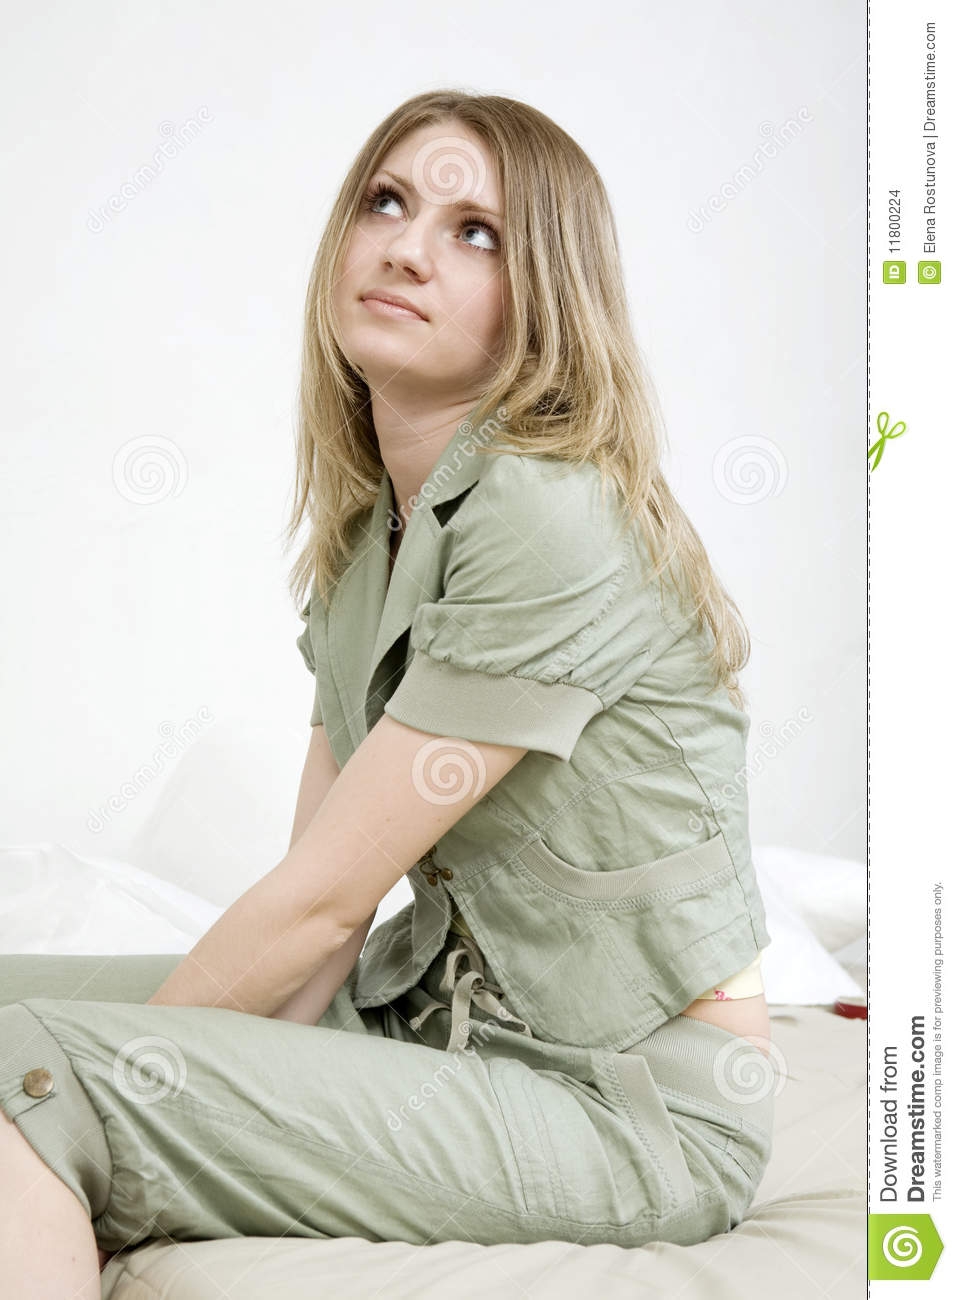 Stock Images Lovely Woman Sitting On Bed